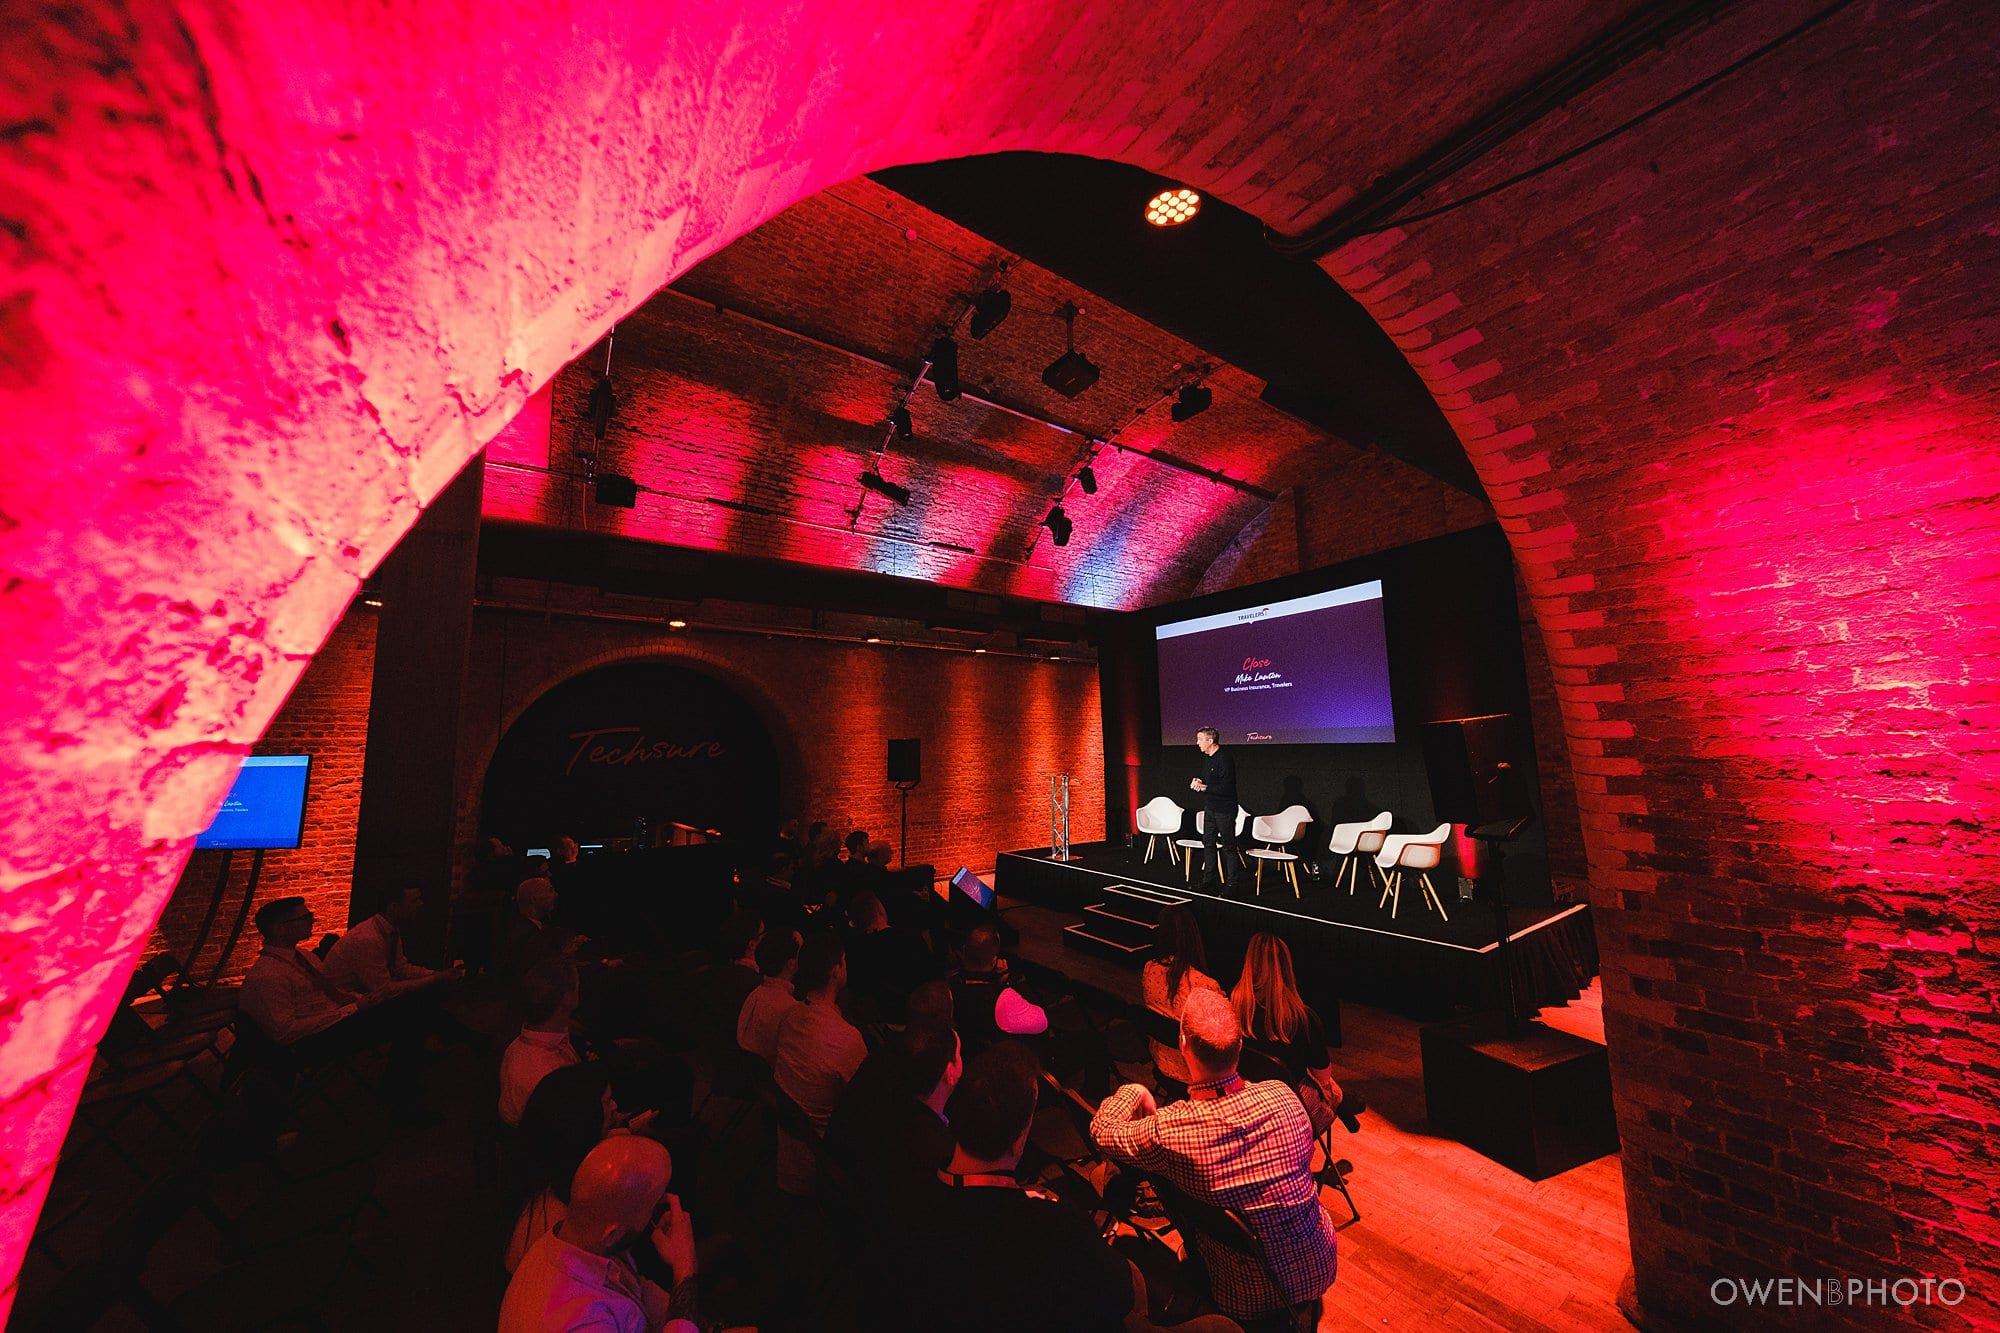 a corporate conference at the steelyard in london